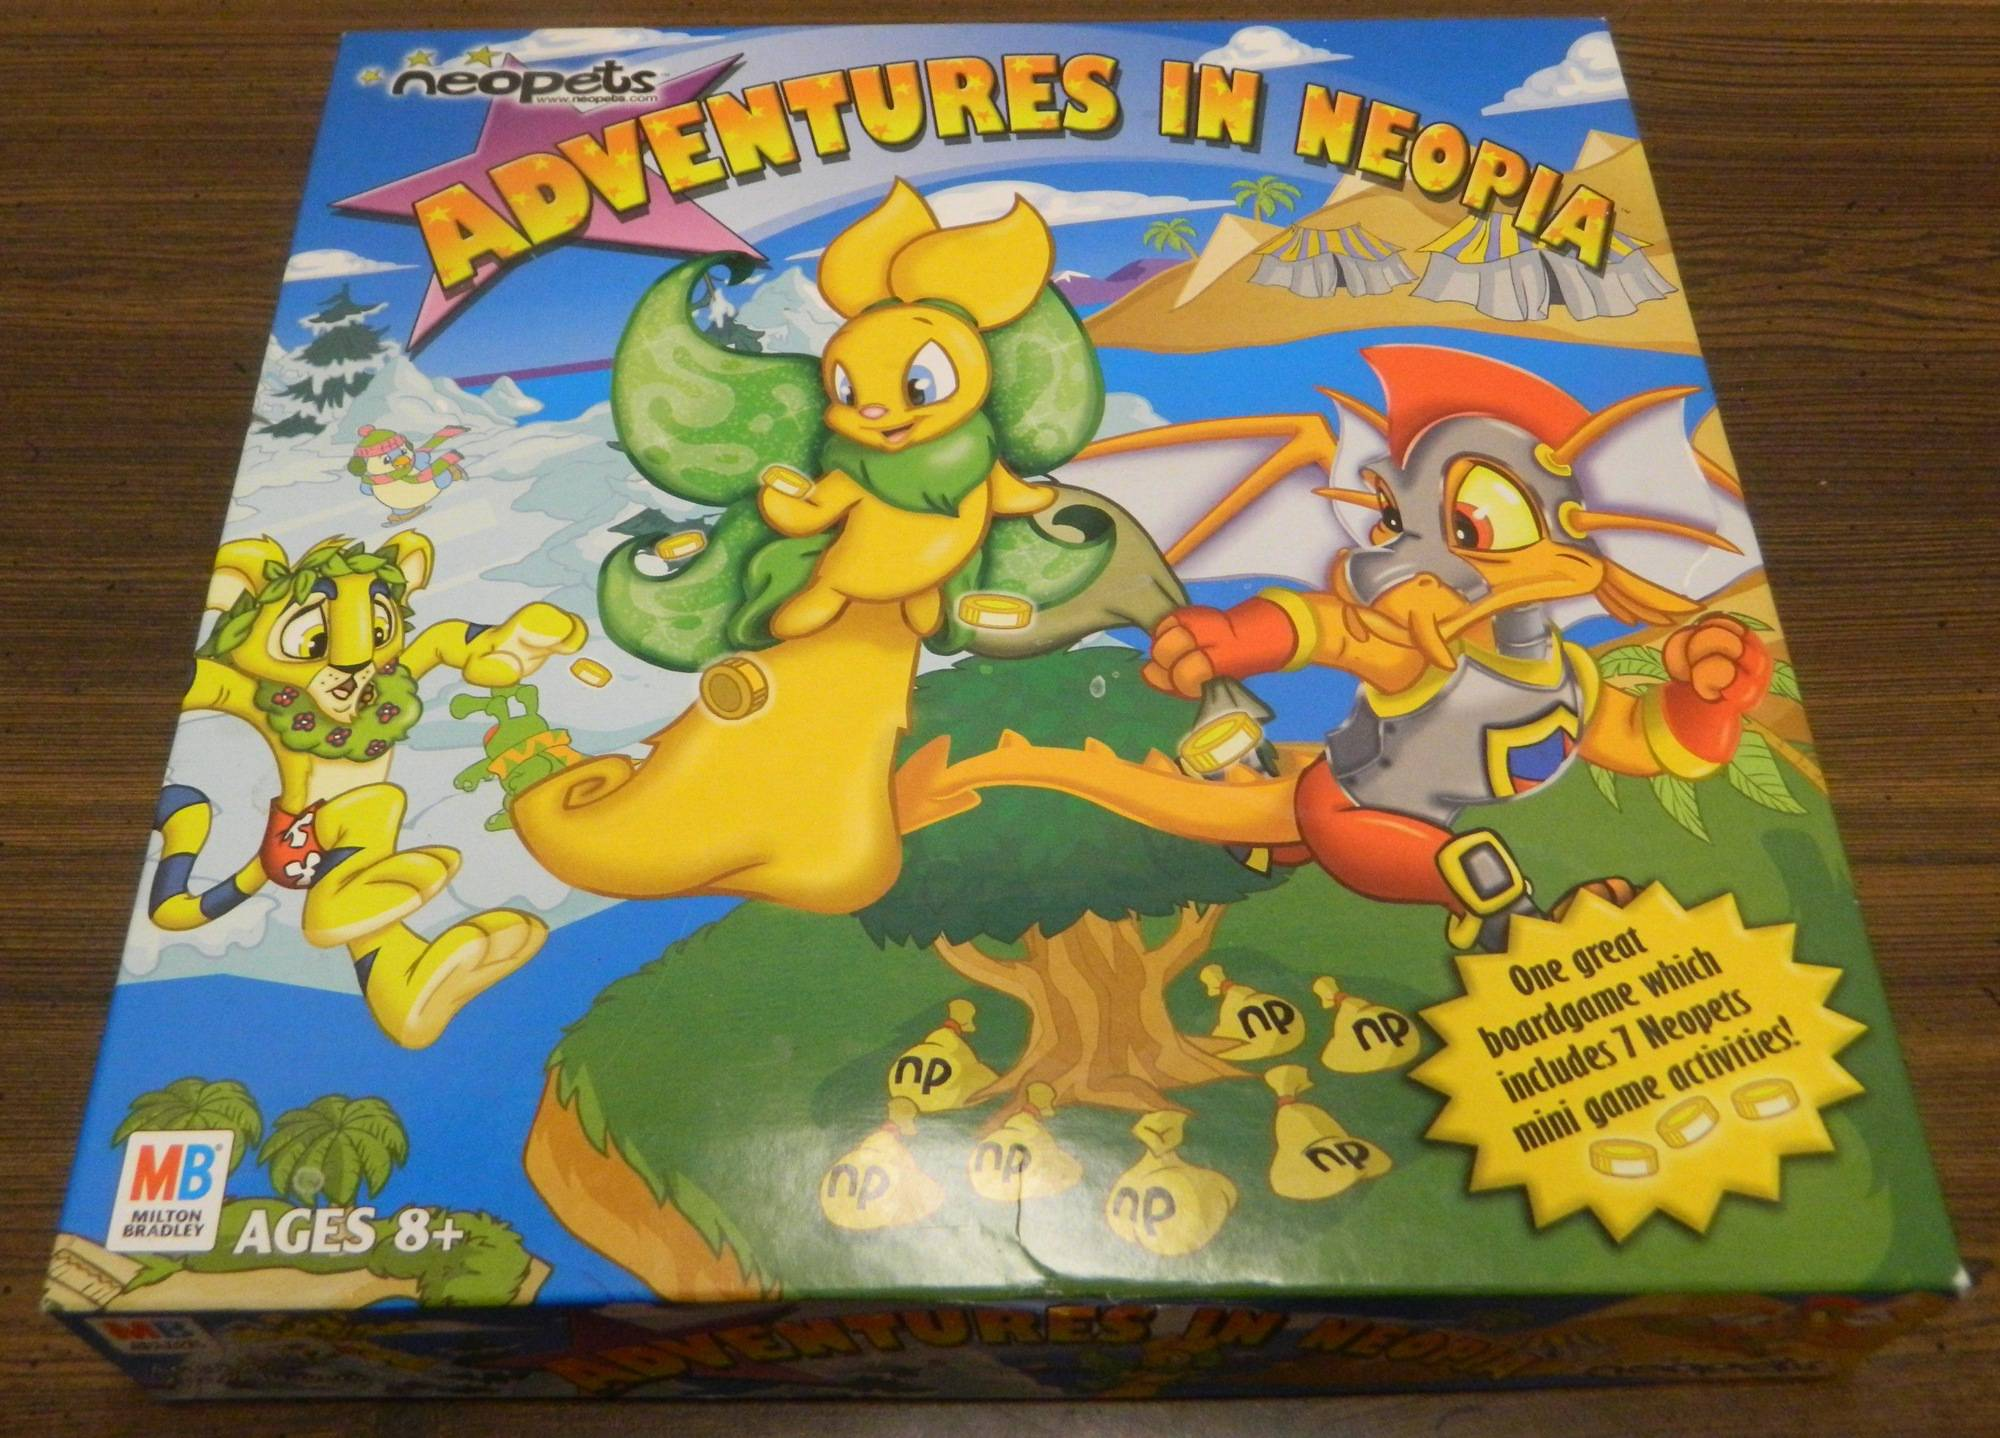 Box for Neopets Adventures in Neopia